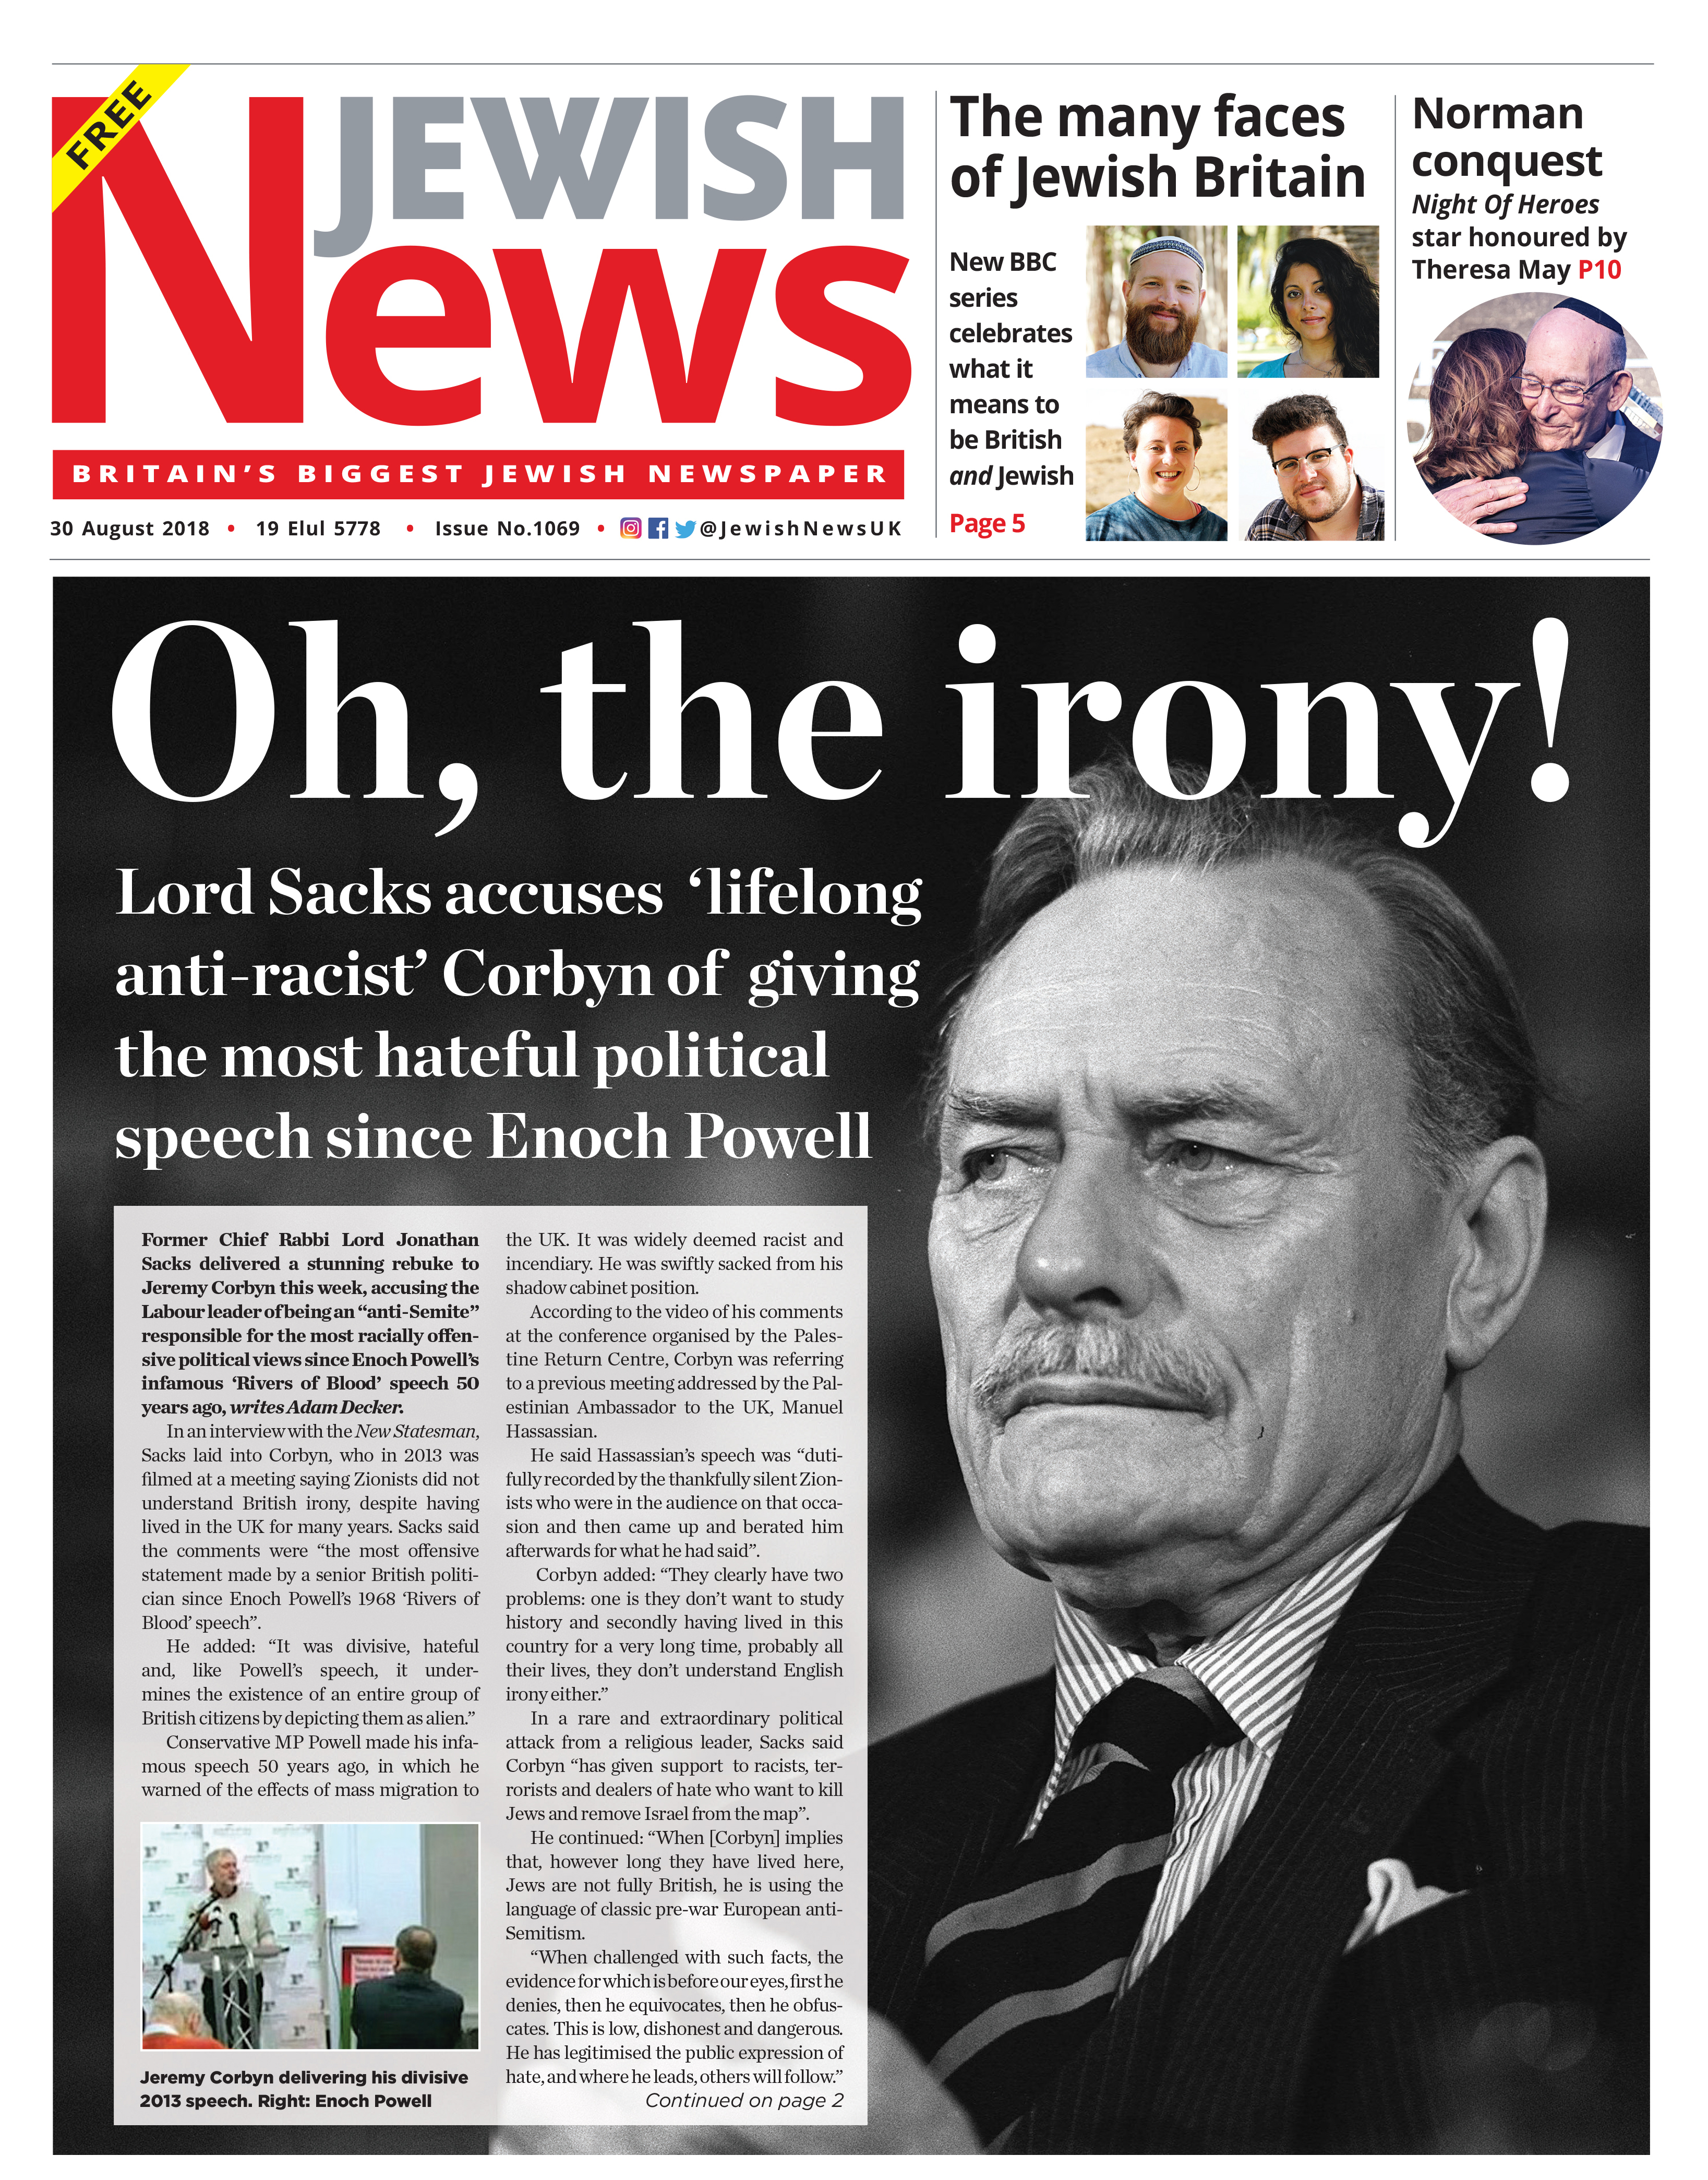 This Jewish News front page in the week of Rabbi Lord Sacks' comments about Jeremy Corbyn